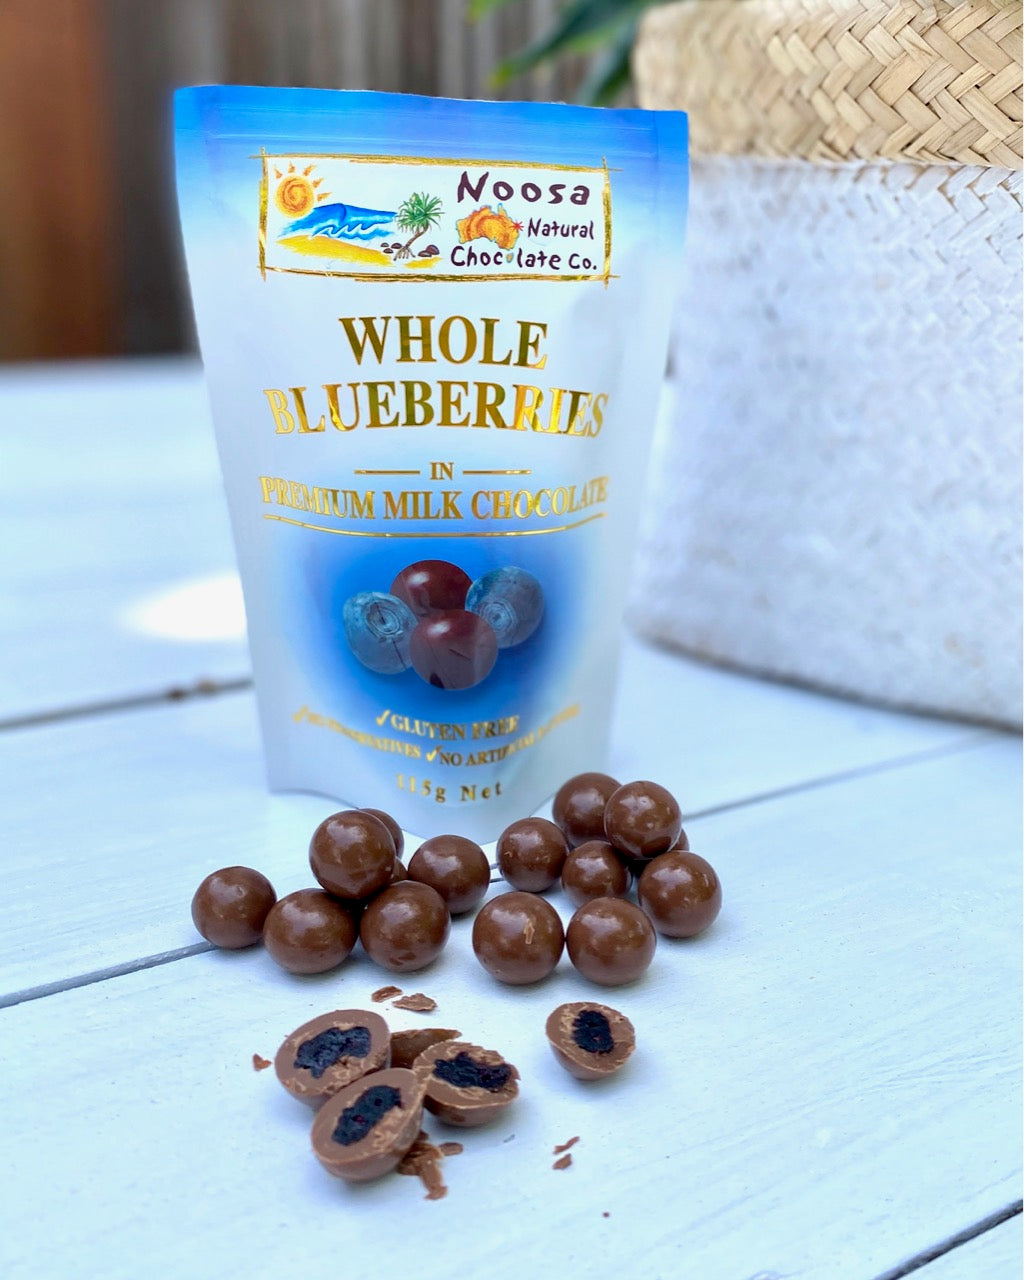 Blueberries Coated in Premium Milk Chocolate